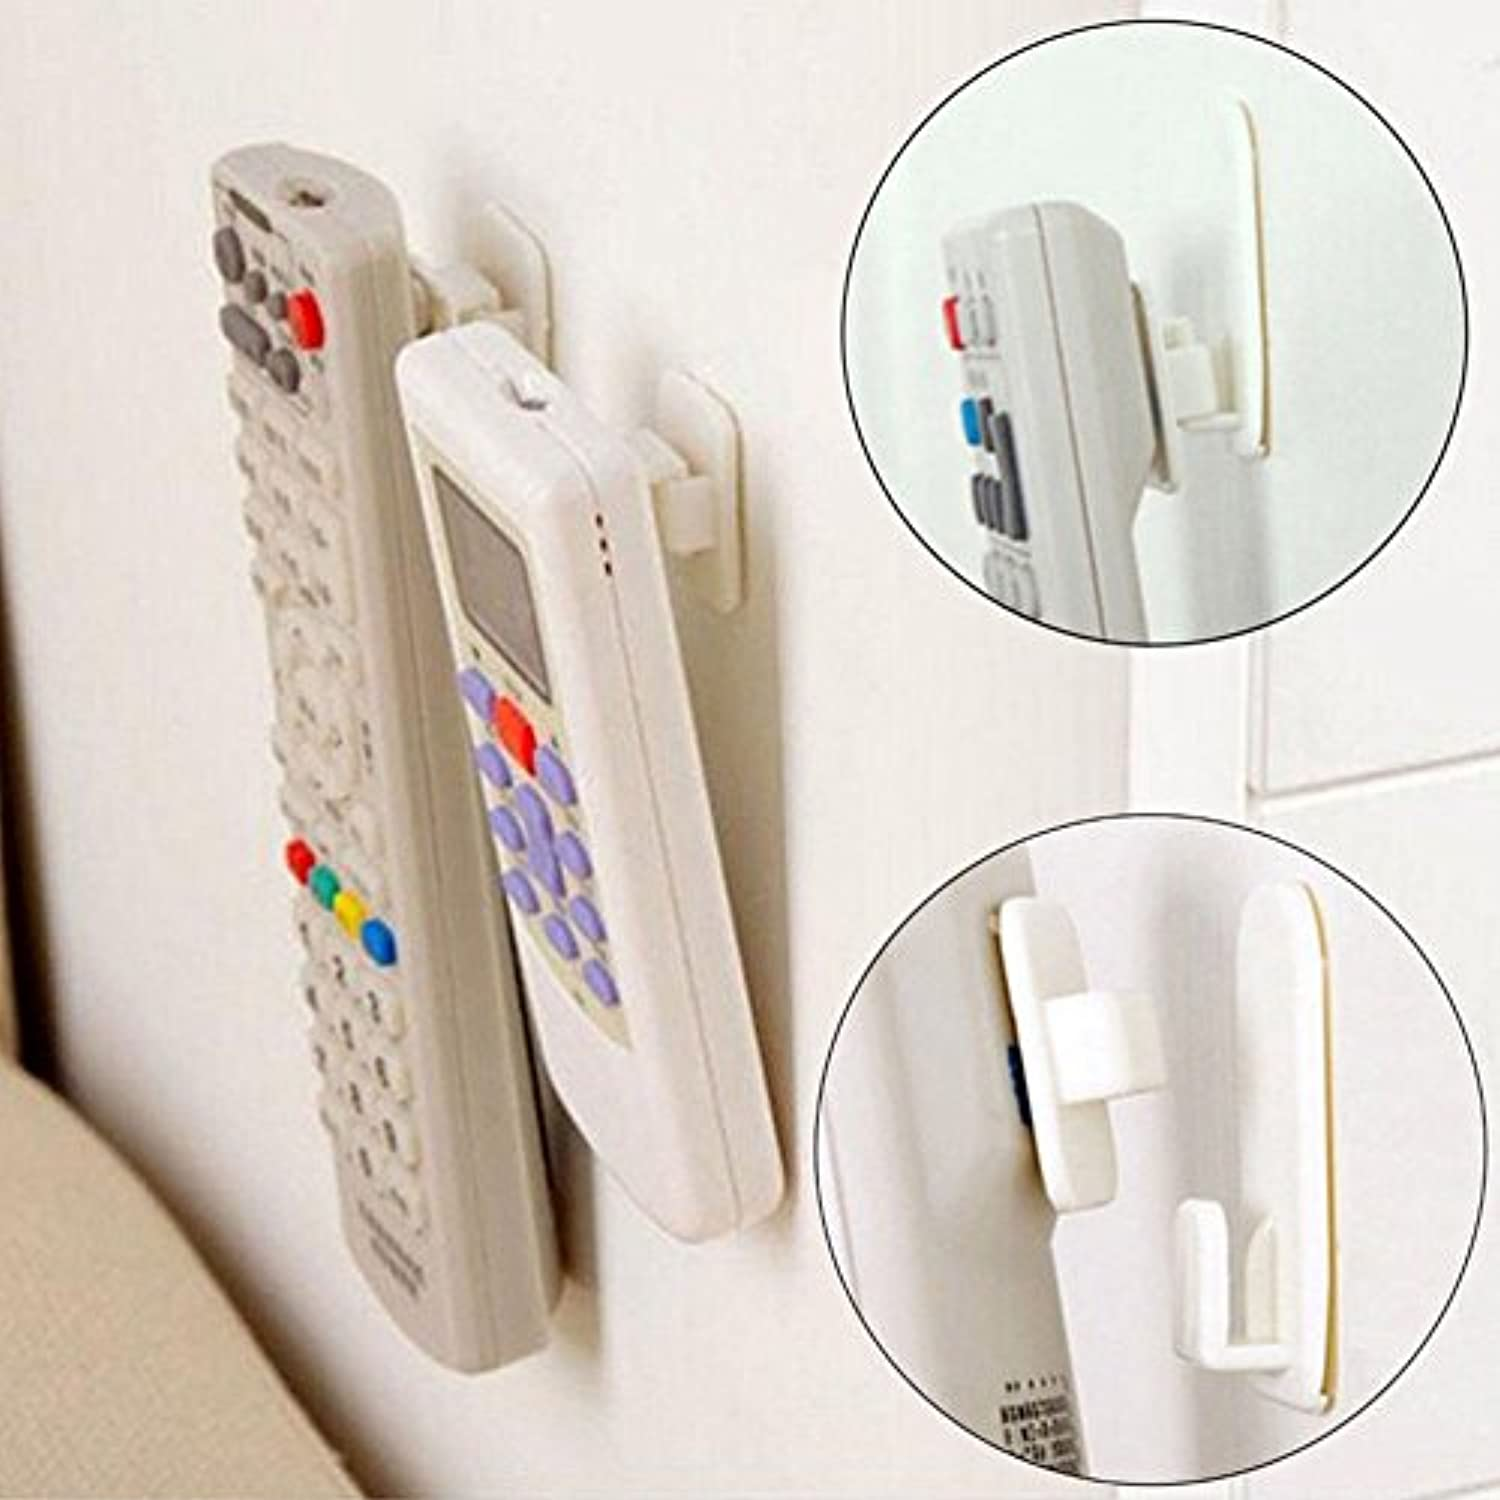 Generic Sticky Hook Set TV Air Conditioner Remote Control Key Practical Wall Storage Plastic Hooks Holder Strong Hanger 1Package(4Pcs)